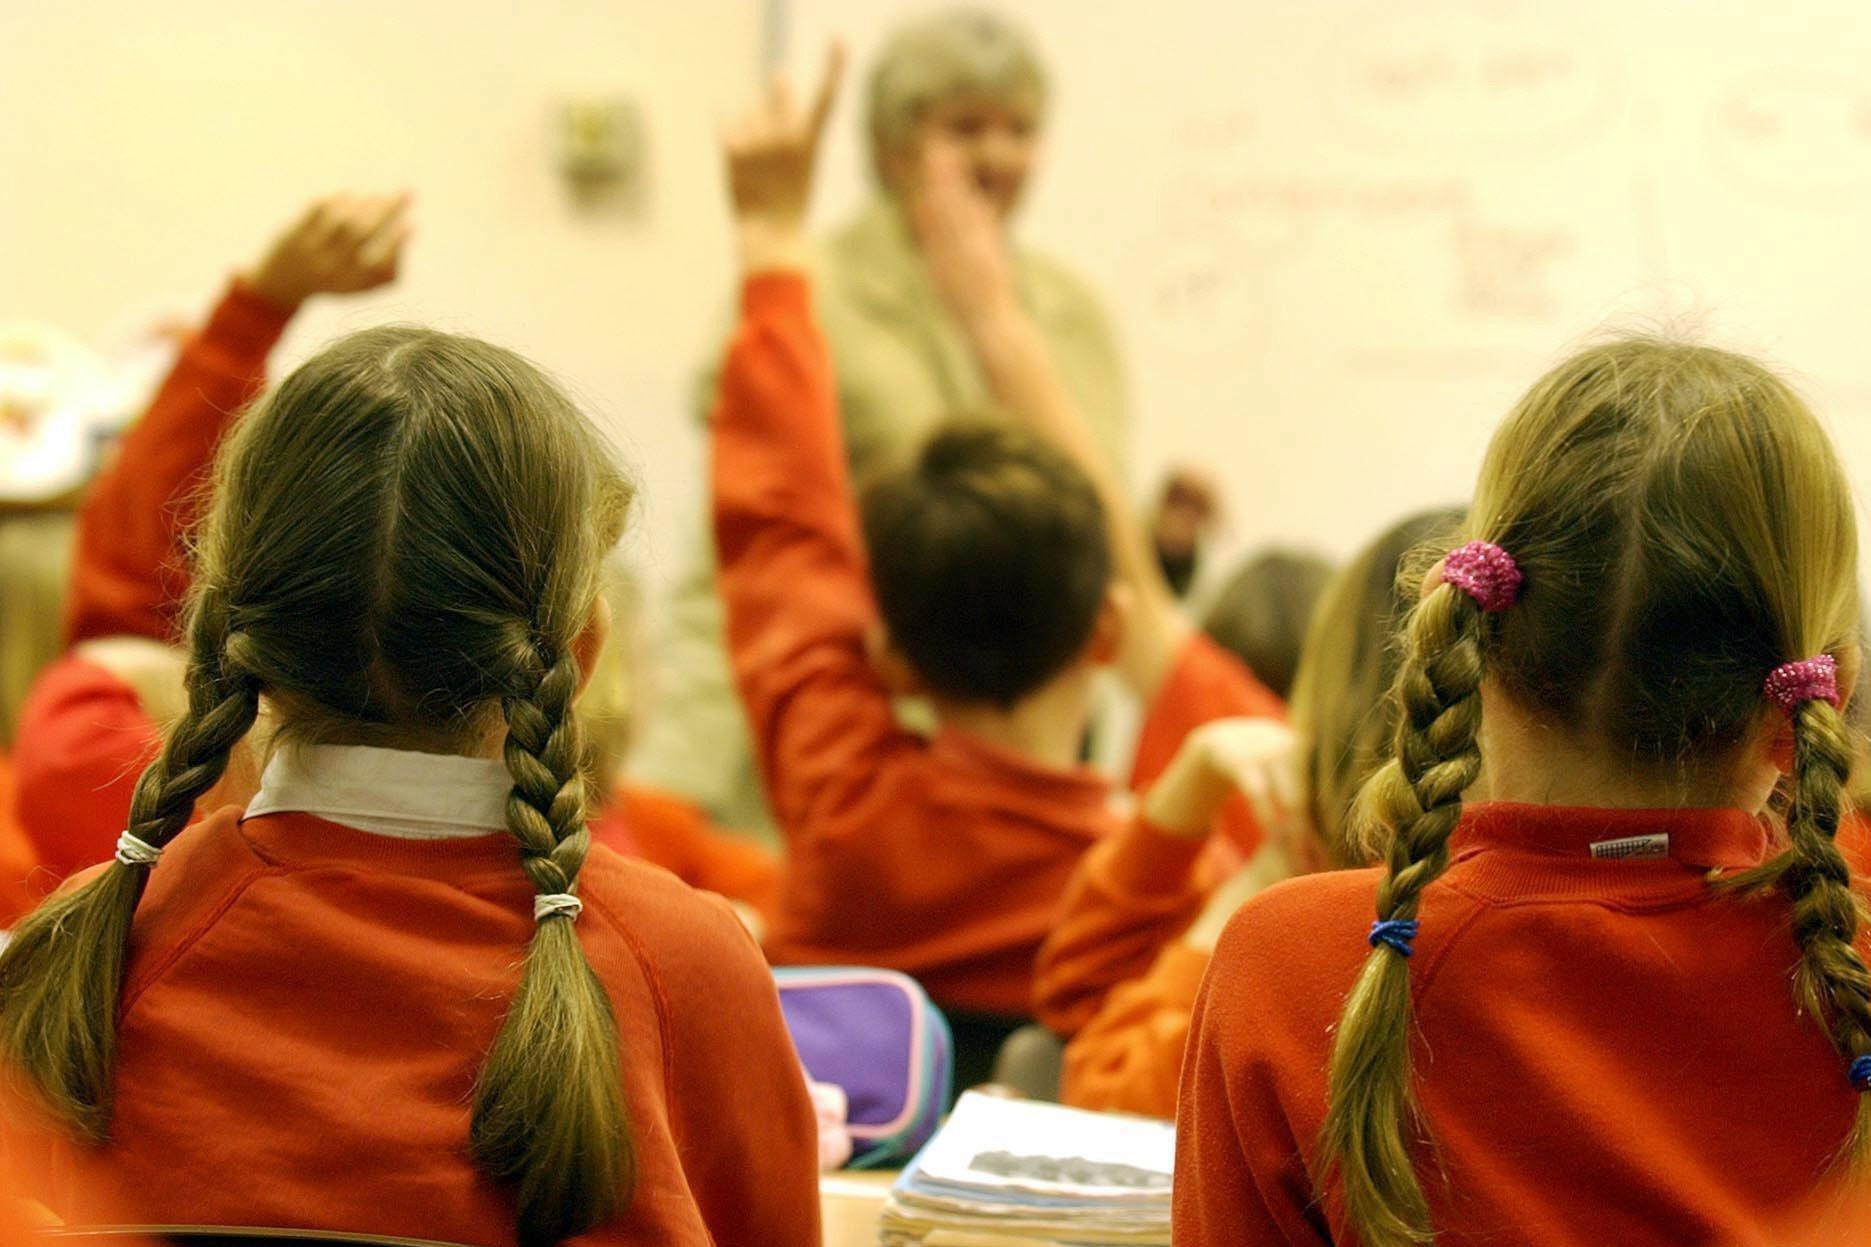 Primary school pupils, as 82% of people believe school teachers are very or quite influential on the lives of others